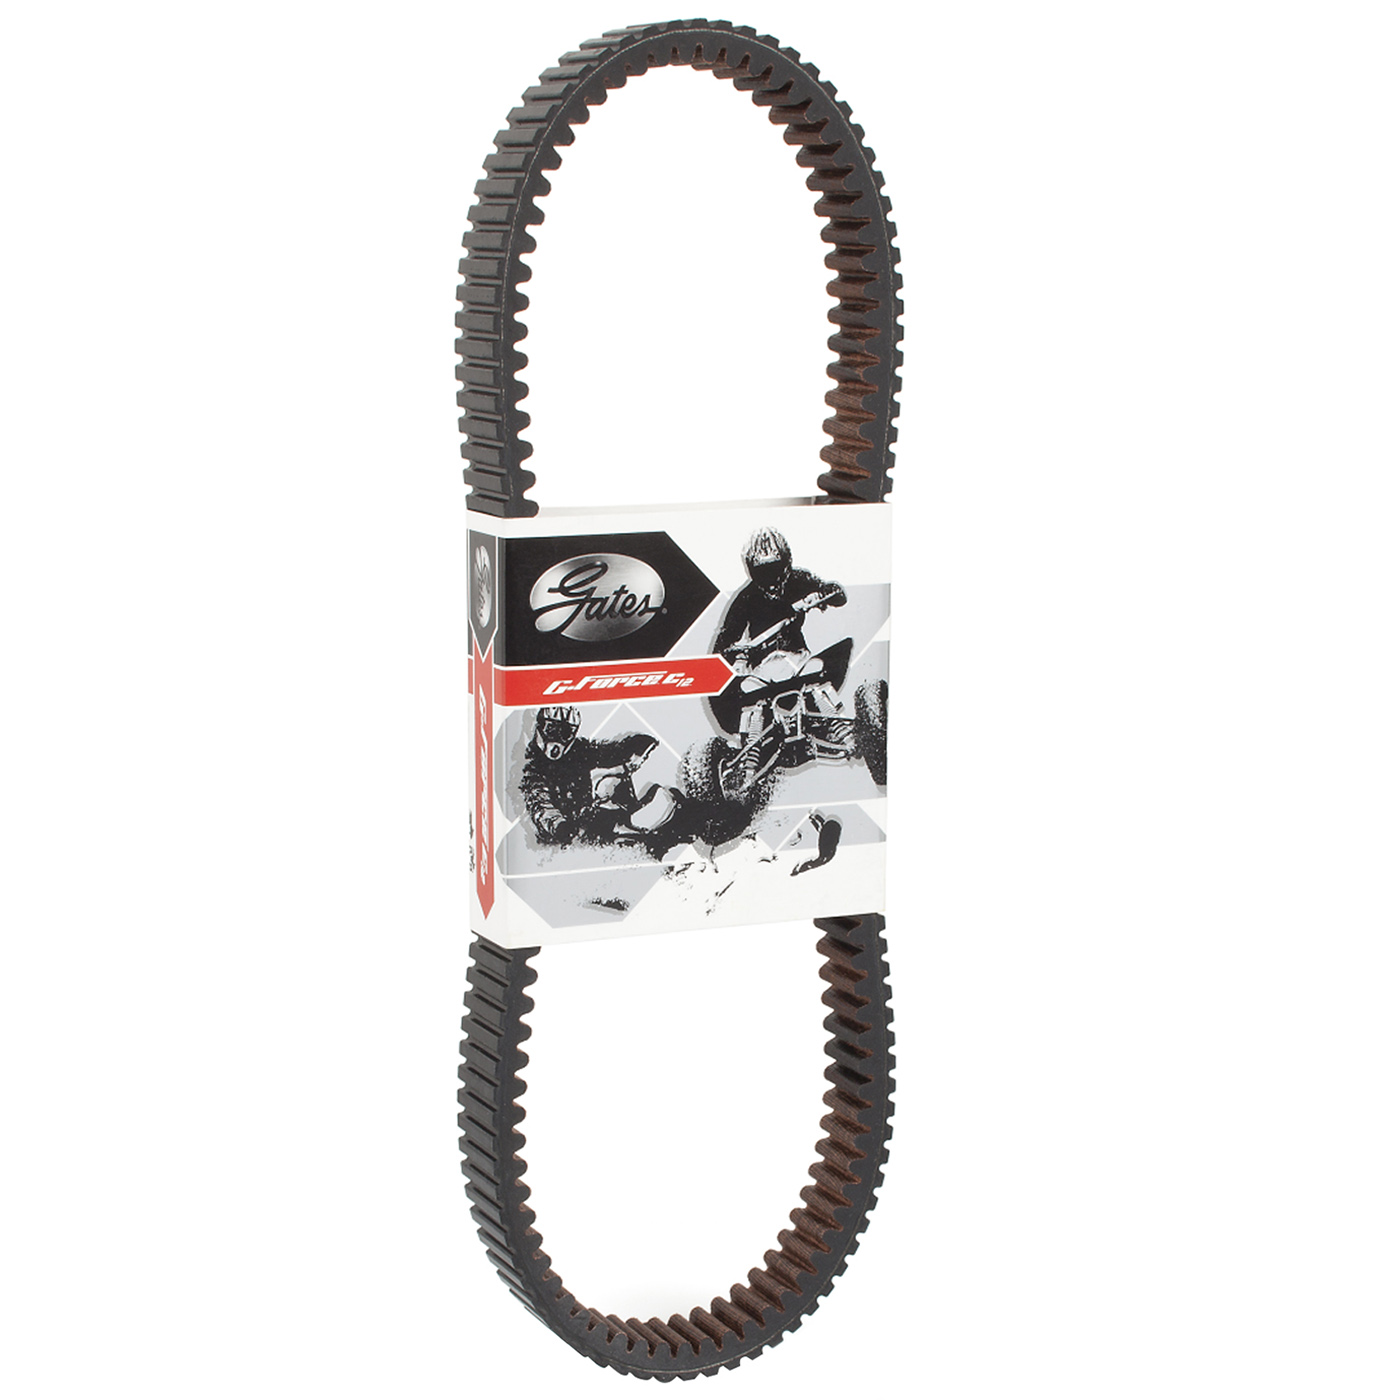 Dayco Performance Drive Belt 2008-2013 Can-Am Outlander 400 EFI//XT